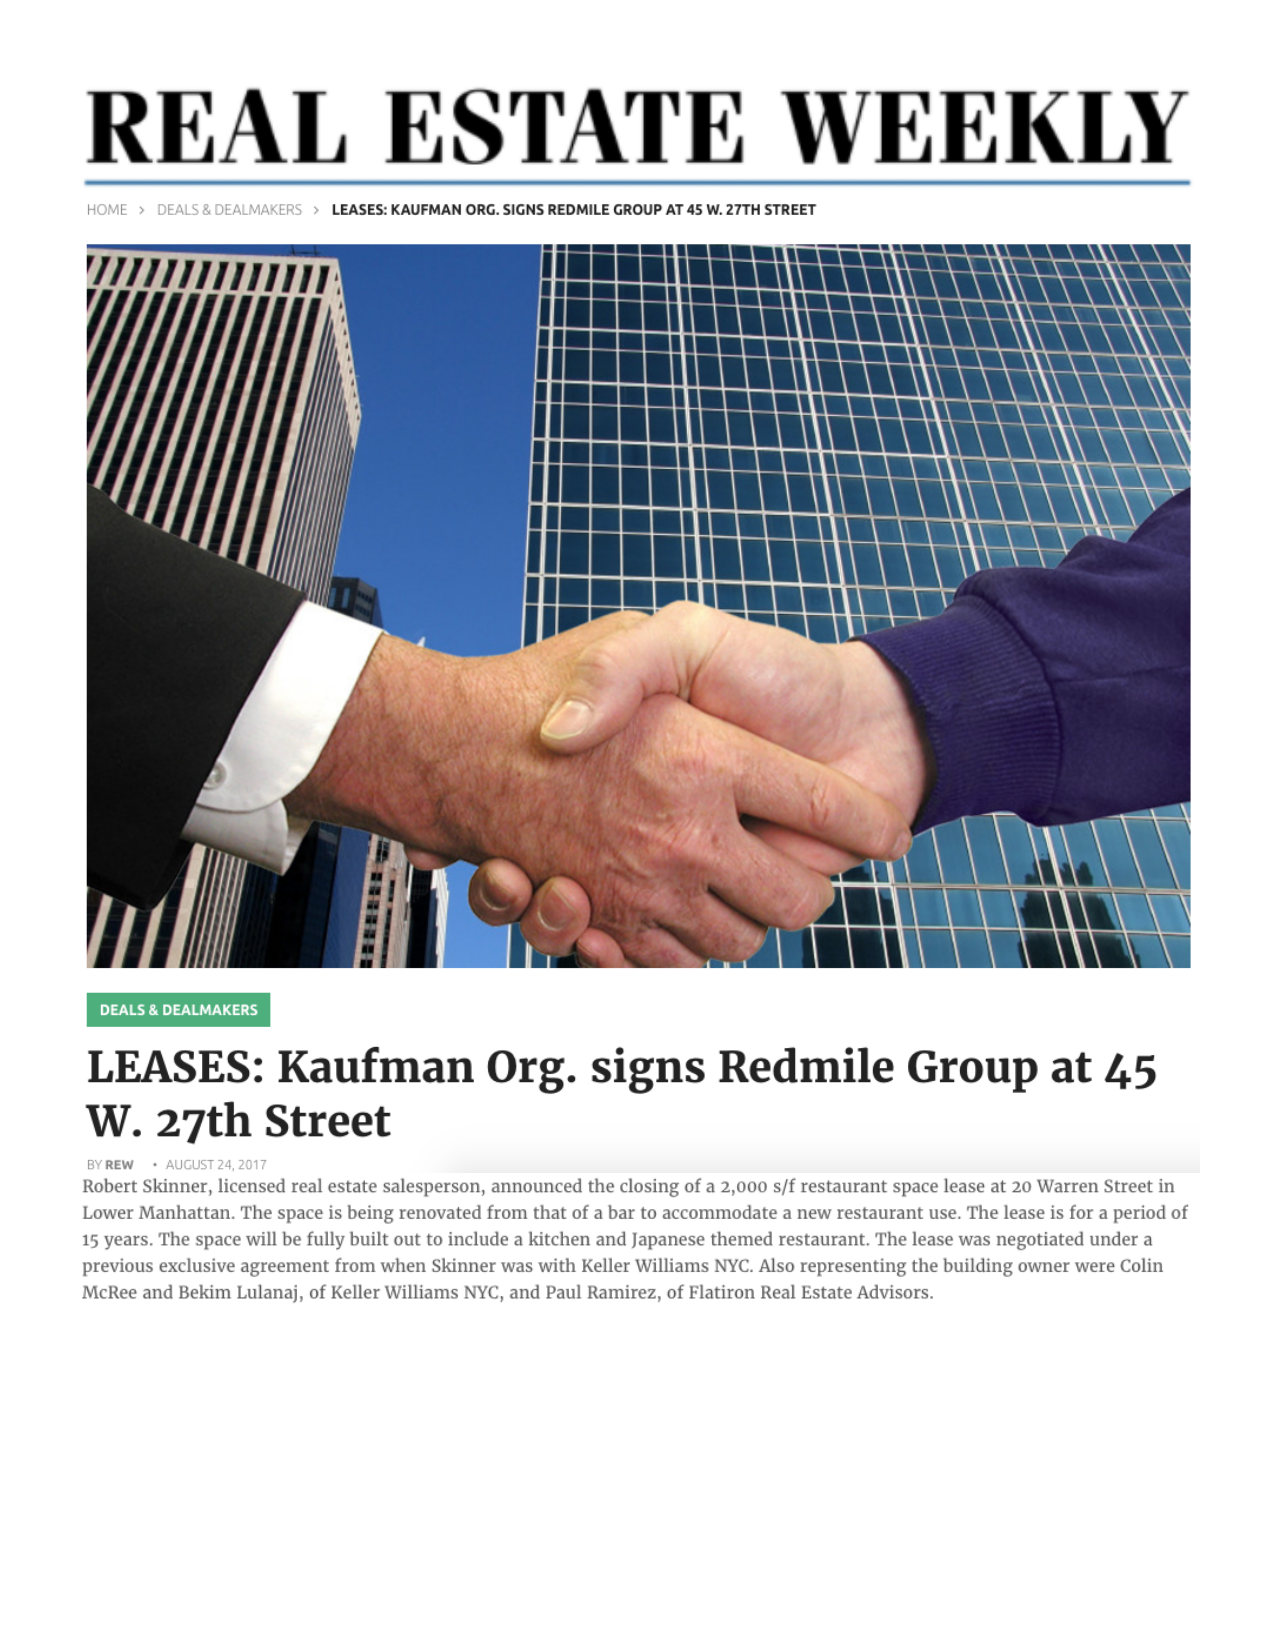 LEASES: Kaufman Org. signs Redmile Group at 45 W. 27th Street